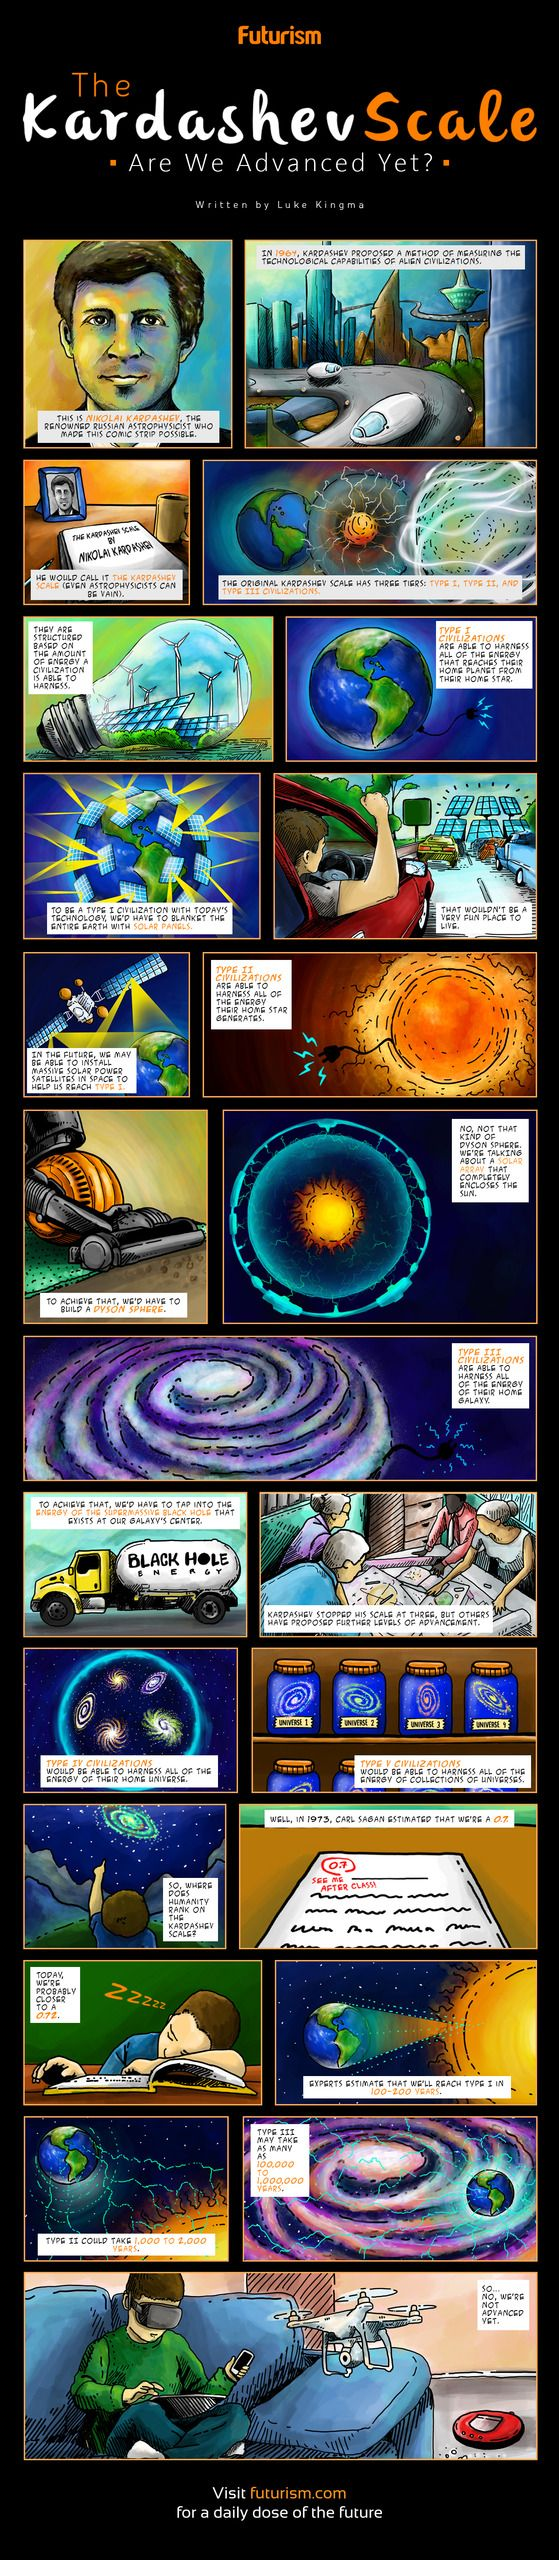 How do humans rank on the Kardashev Scale of advanced alien civilizations?   Our newest comic explores the question.  http://futurism.com/images/the-kardashev-scale-alien-intelligence-are-we-advanced-yet-comic/?utm_campaign=coschedule&utm_source=pinterest&utm_medium=Futurism&utm_content=The%20Kardashev%20Scale%3A%20Are%20We%20Advanced%20Yet%3F%20%5BComic%5D